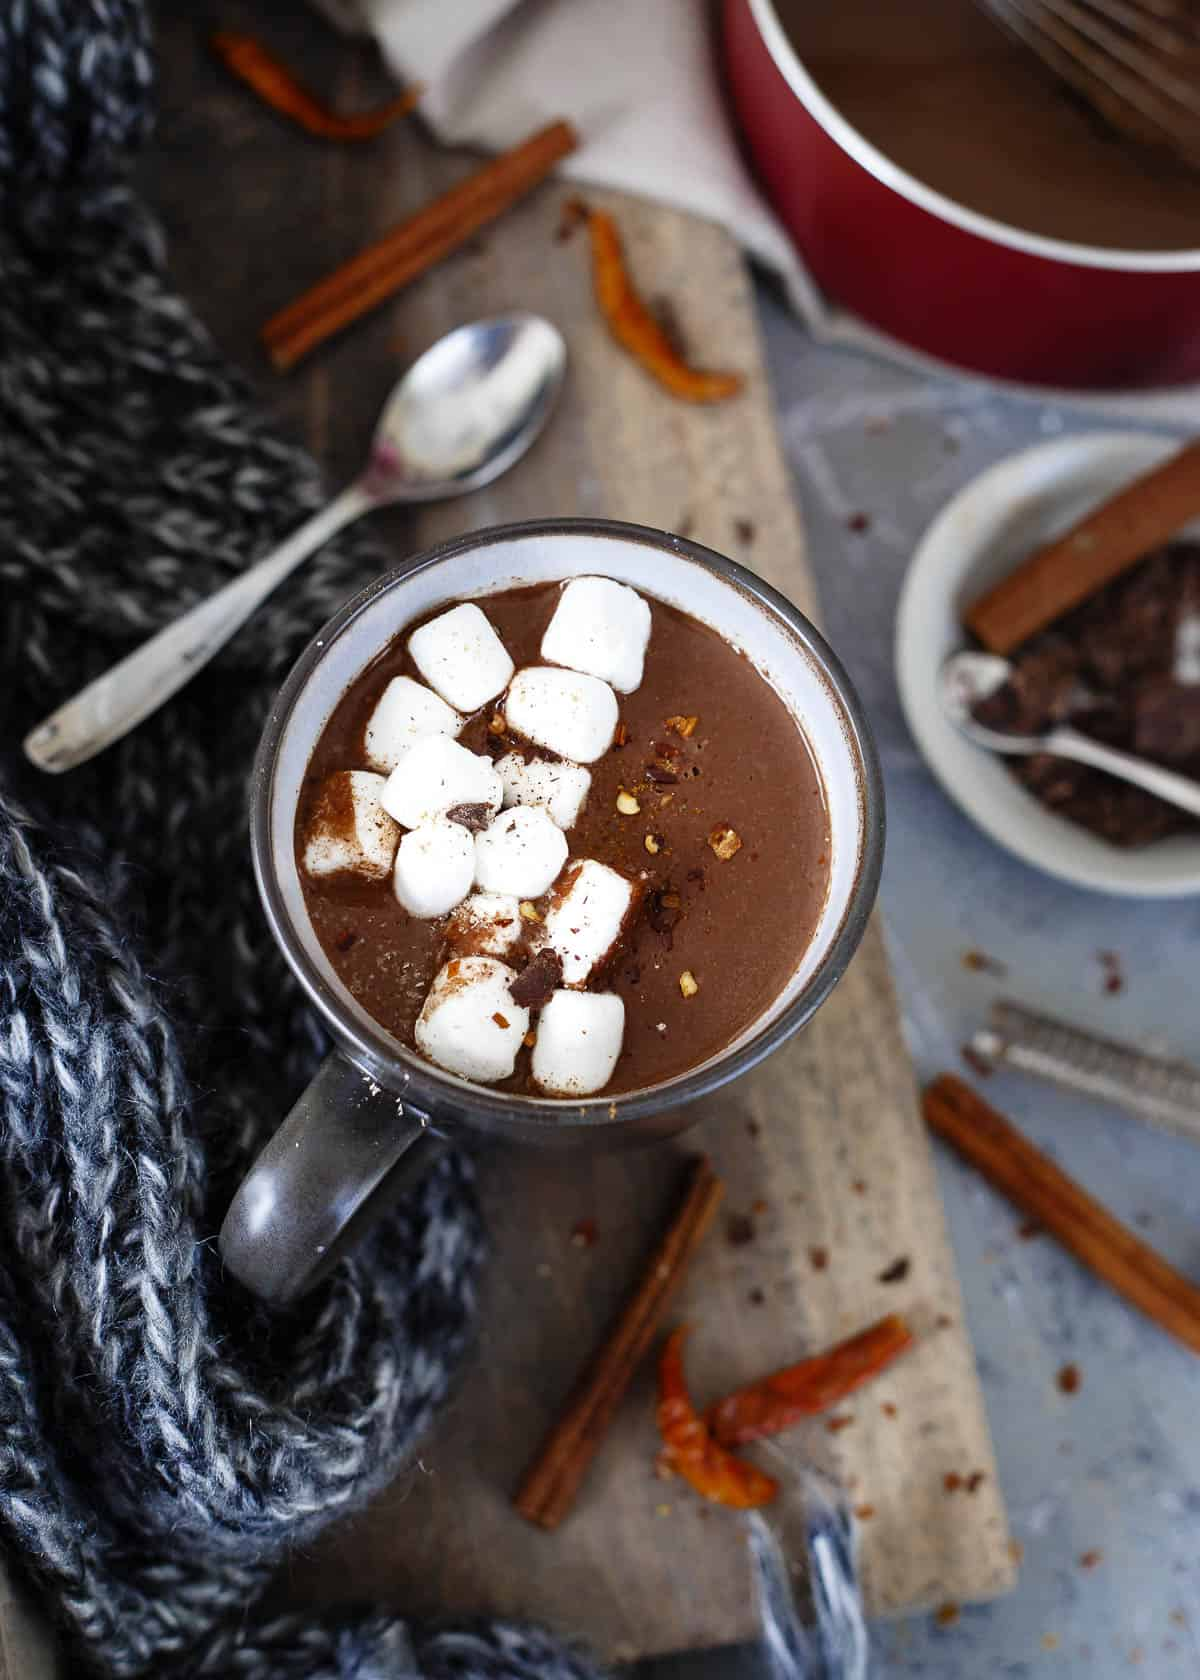 Once you make this Mexican hot chocolate you'll never want to drink the regular stuff again. Creamy, fragrant and just a touch spicy, it'll warm you up on the coldest winter day.